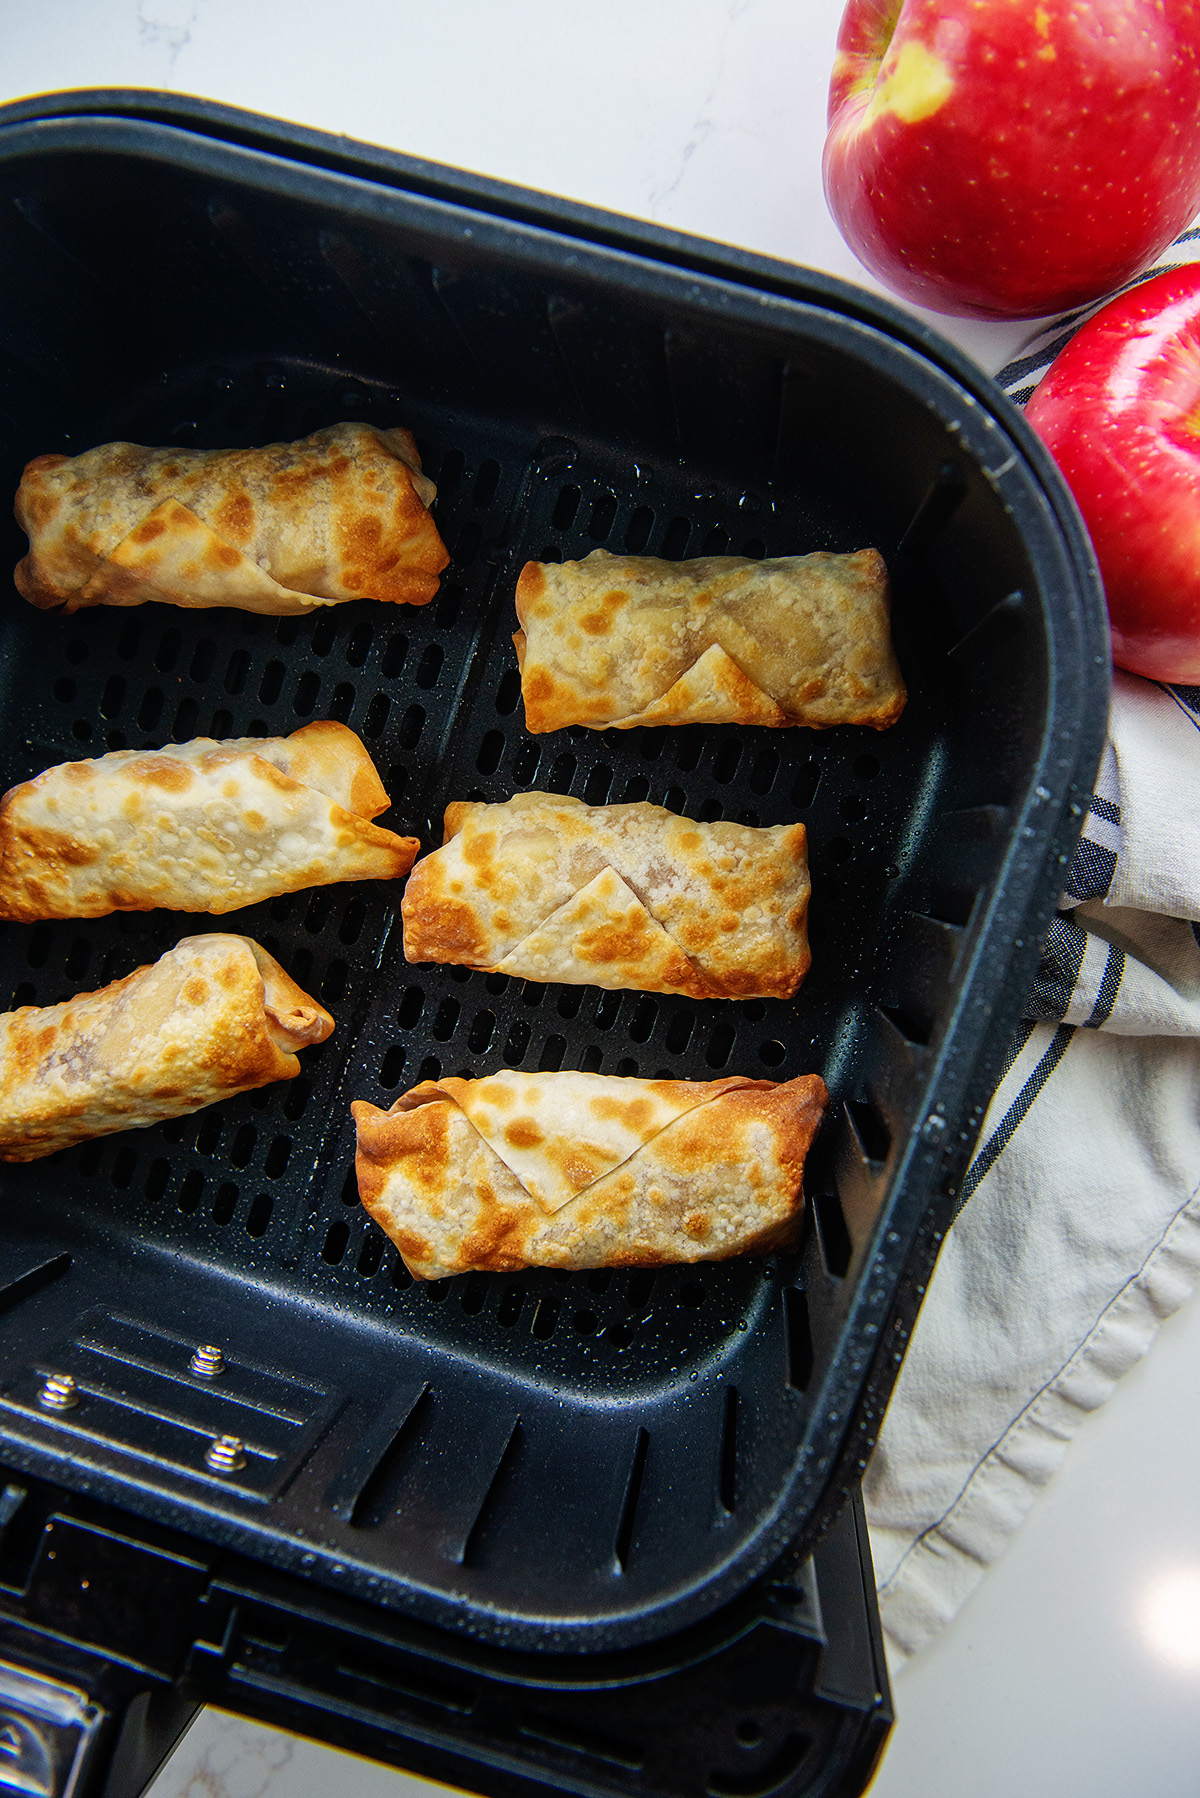 overrhehed view of six egg rolls in aan air fryer basket